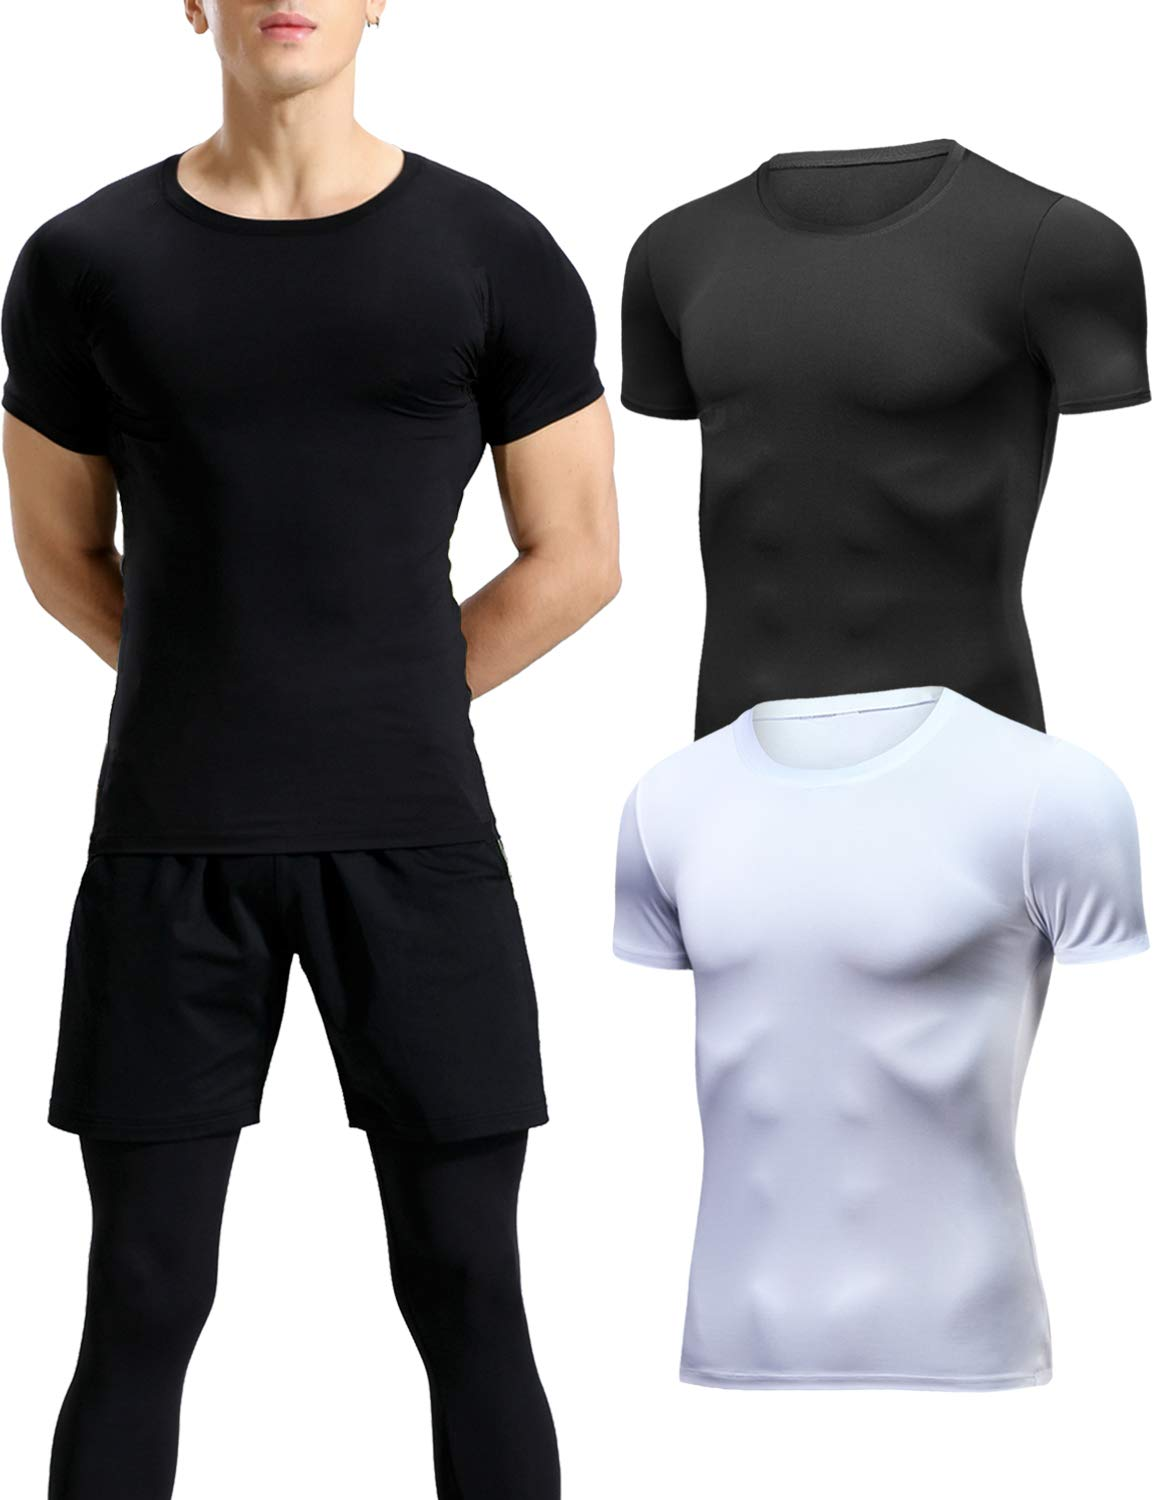 Lavento Men's Cool Dry Compression Shirts Crew Neck Short-Sleeve Workout T-Shirts (2 Pack-Crew Neck Black/White,Large) by Lavento